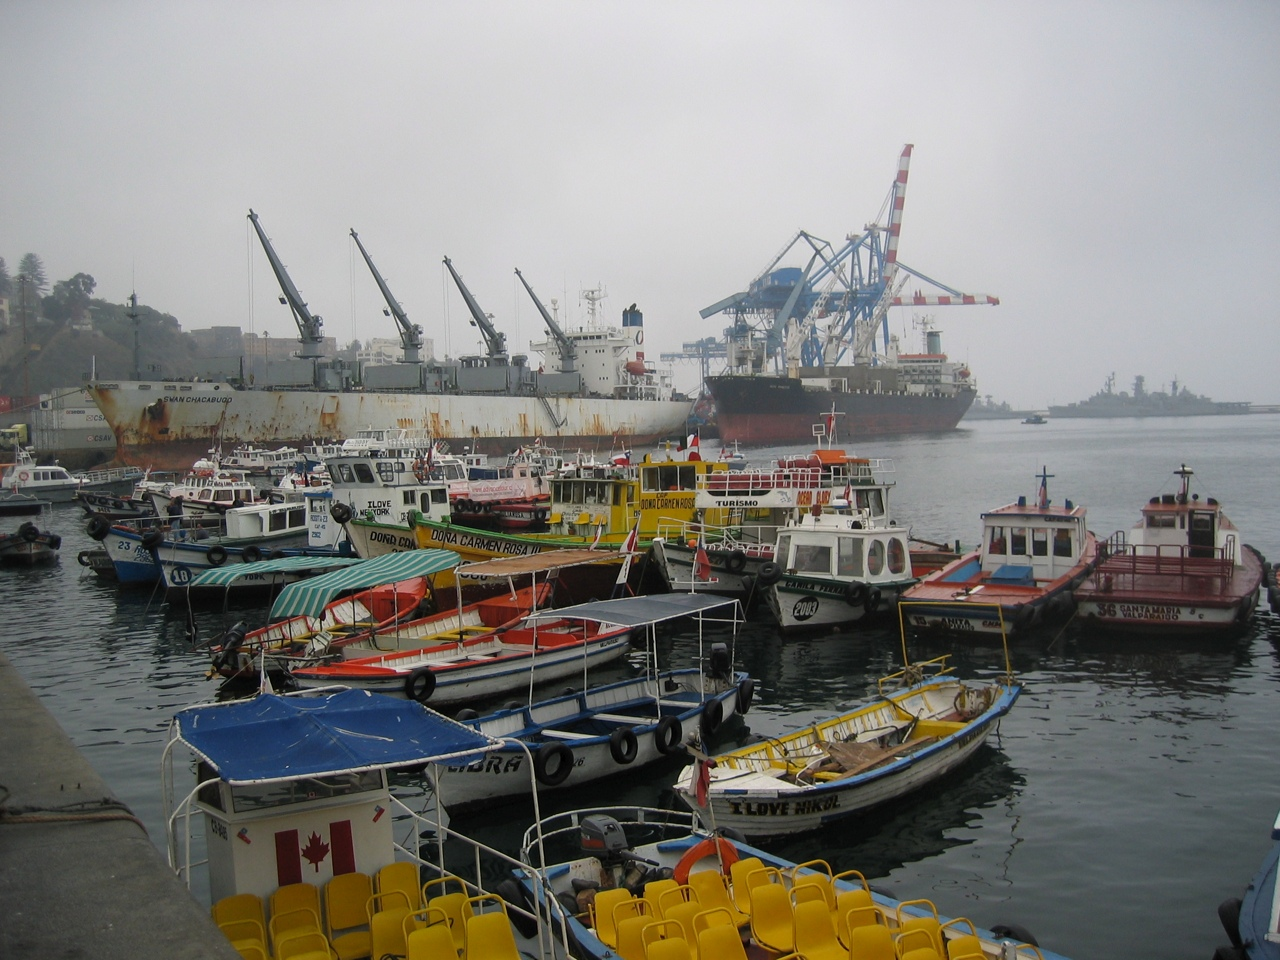 ships docked in a port